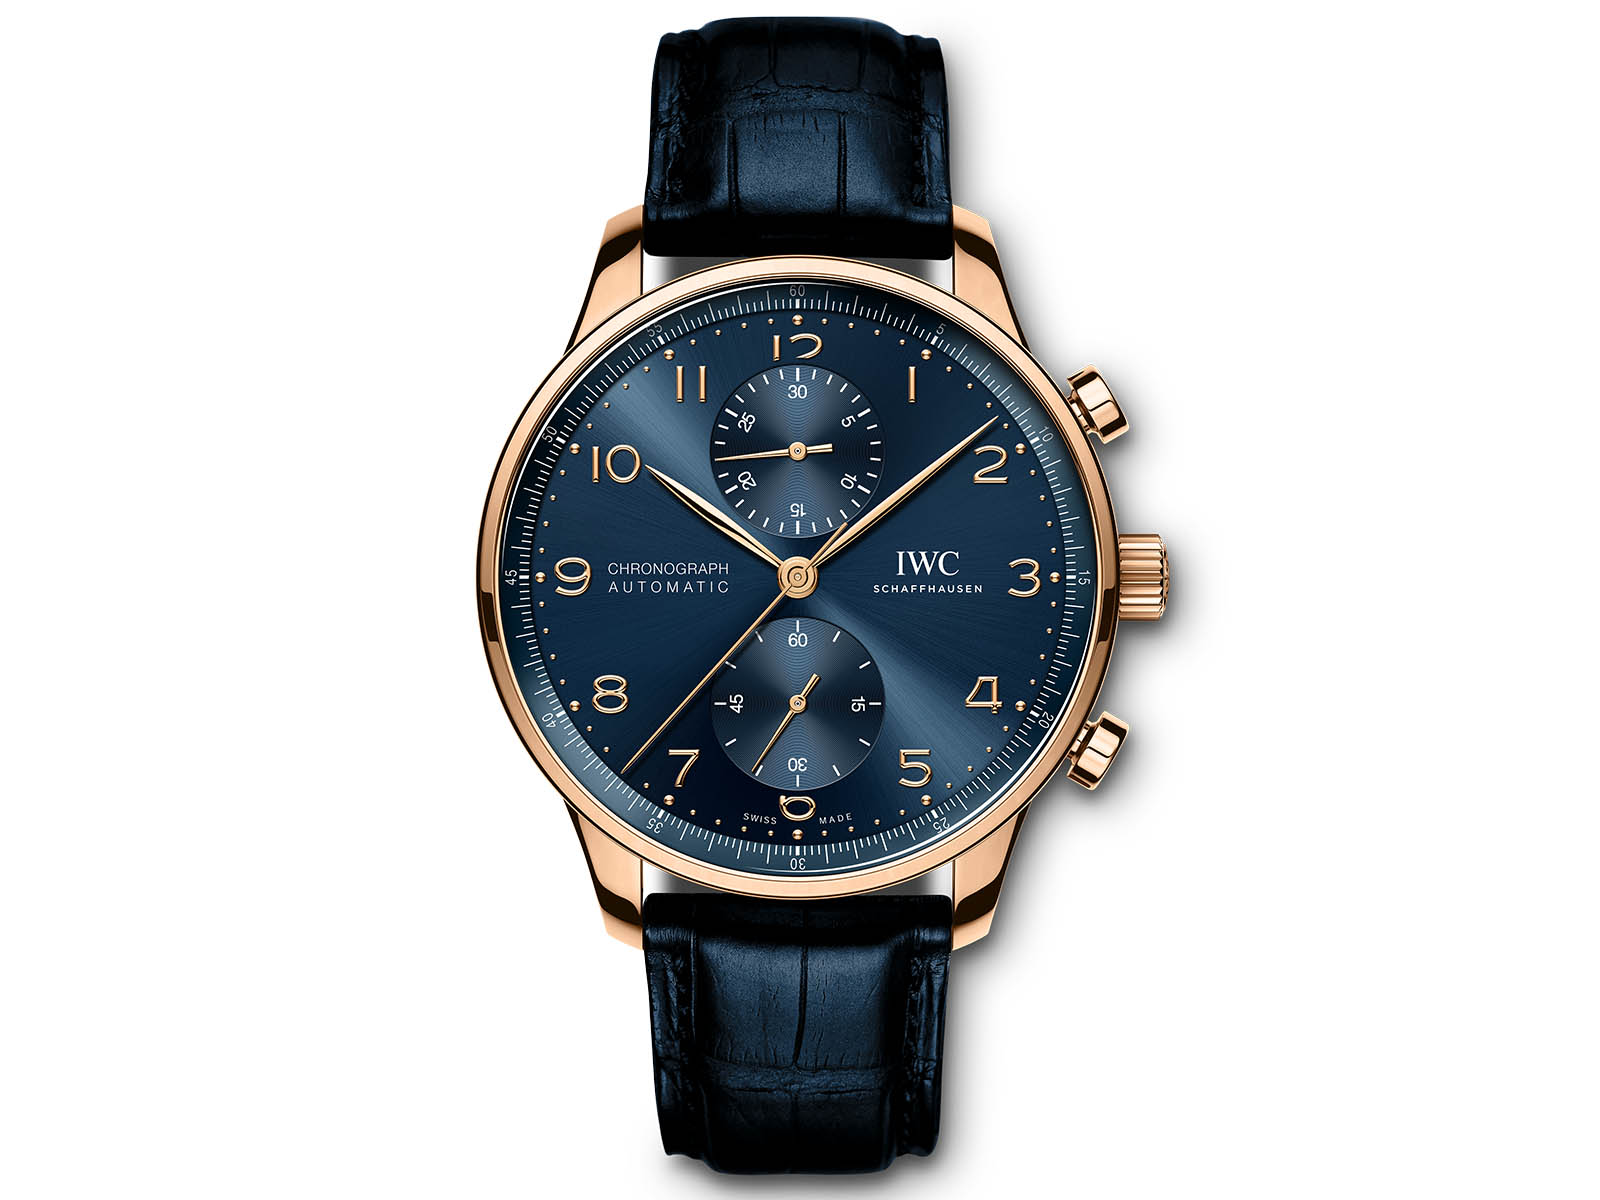 iw371614-iwc-schaffhausen-portugieser-chronograph-watches-wonders-2020-1.jpg